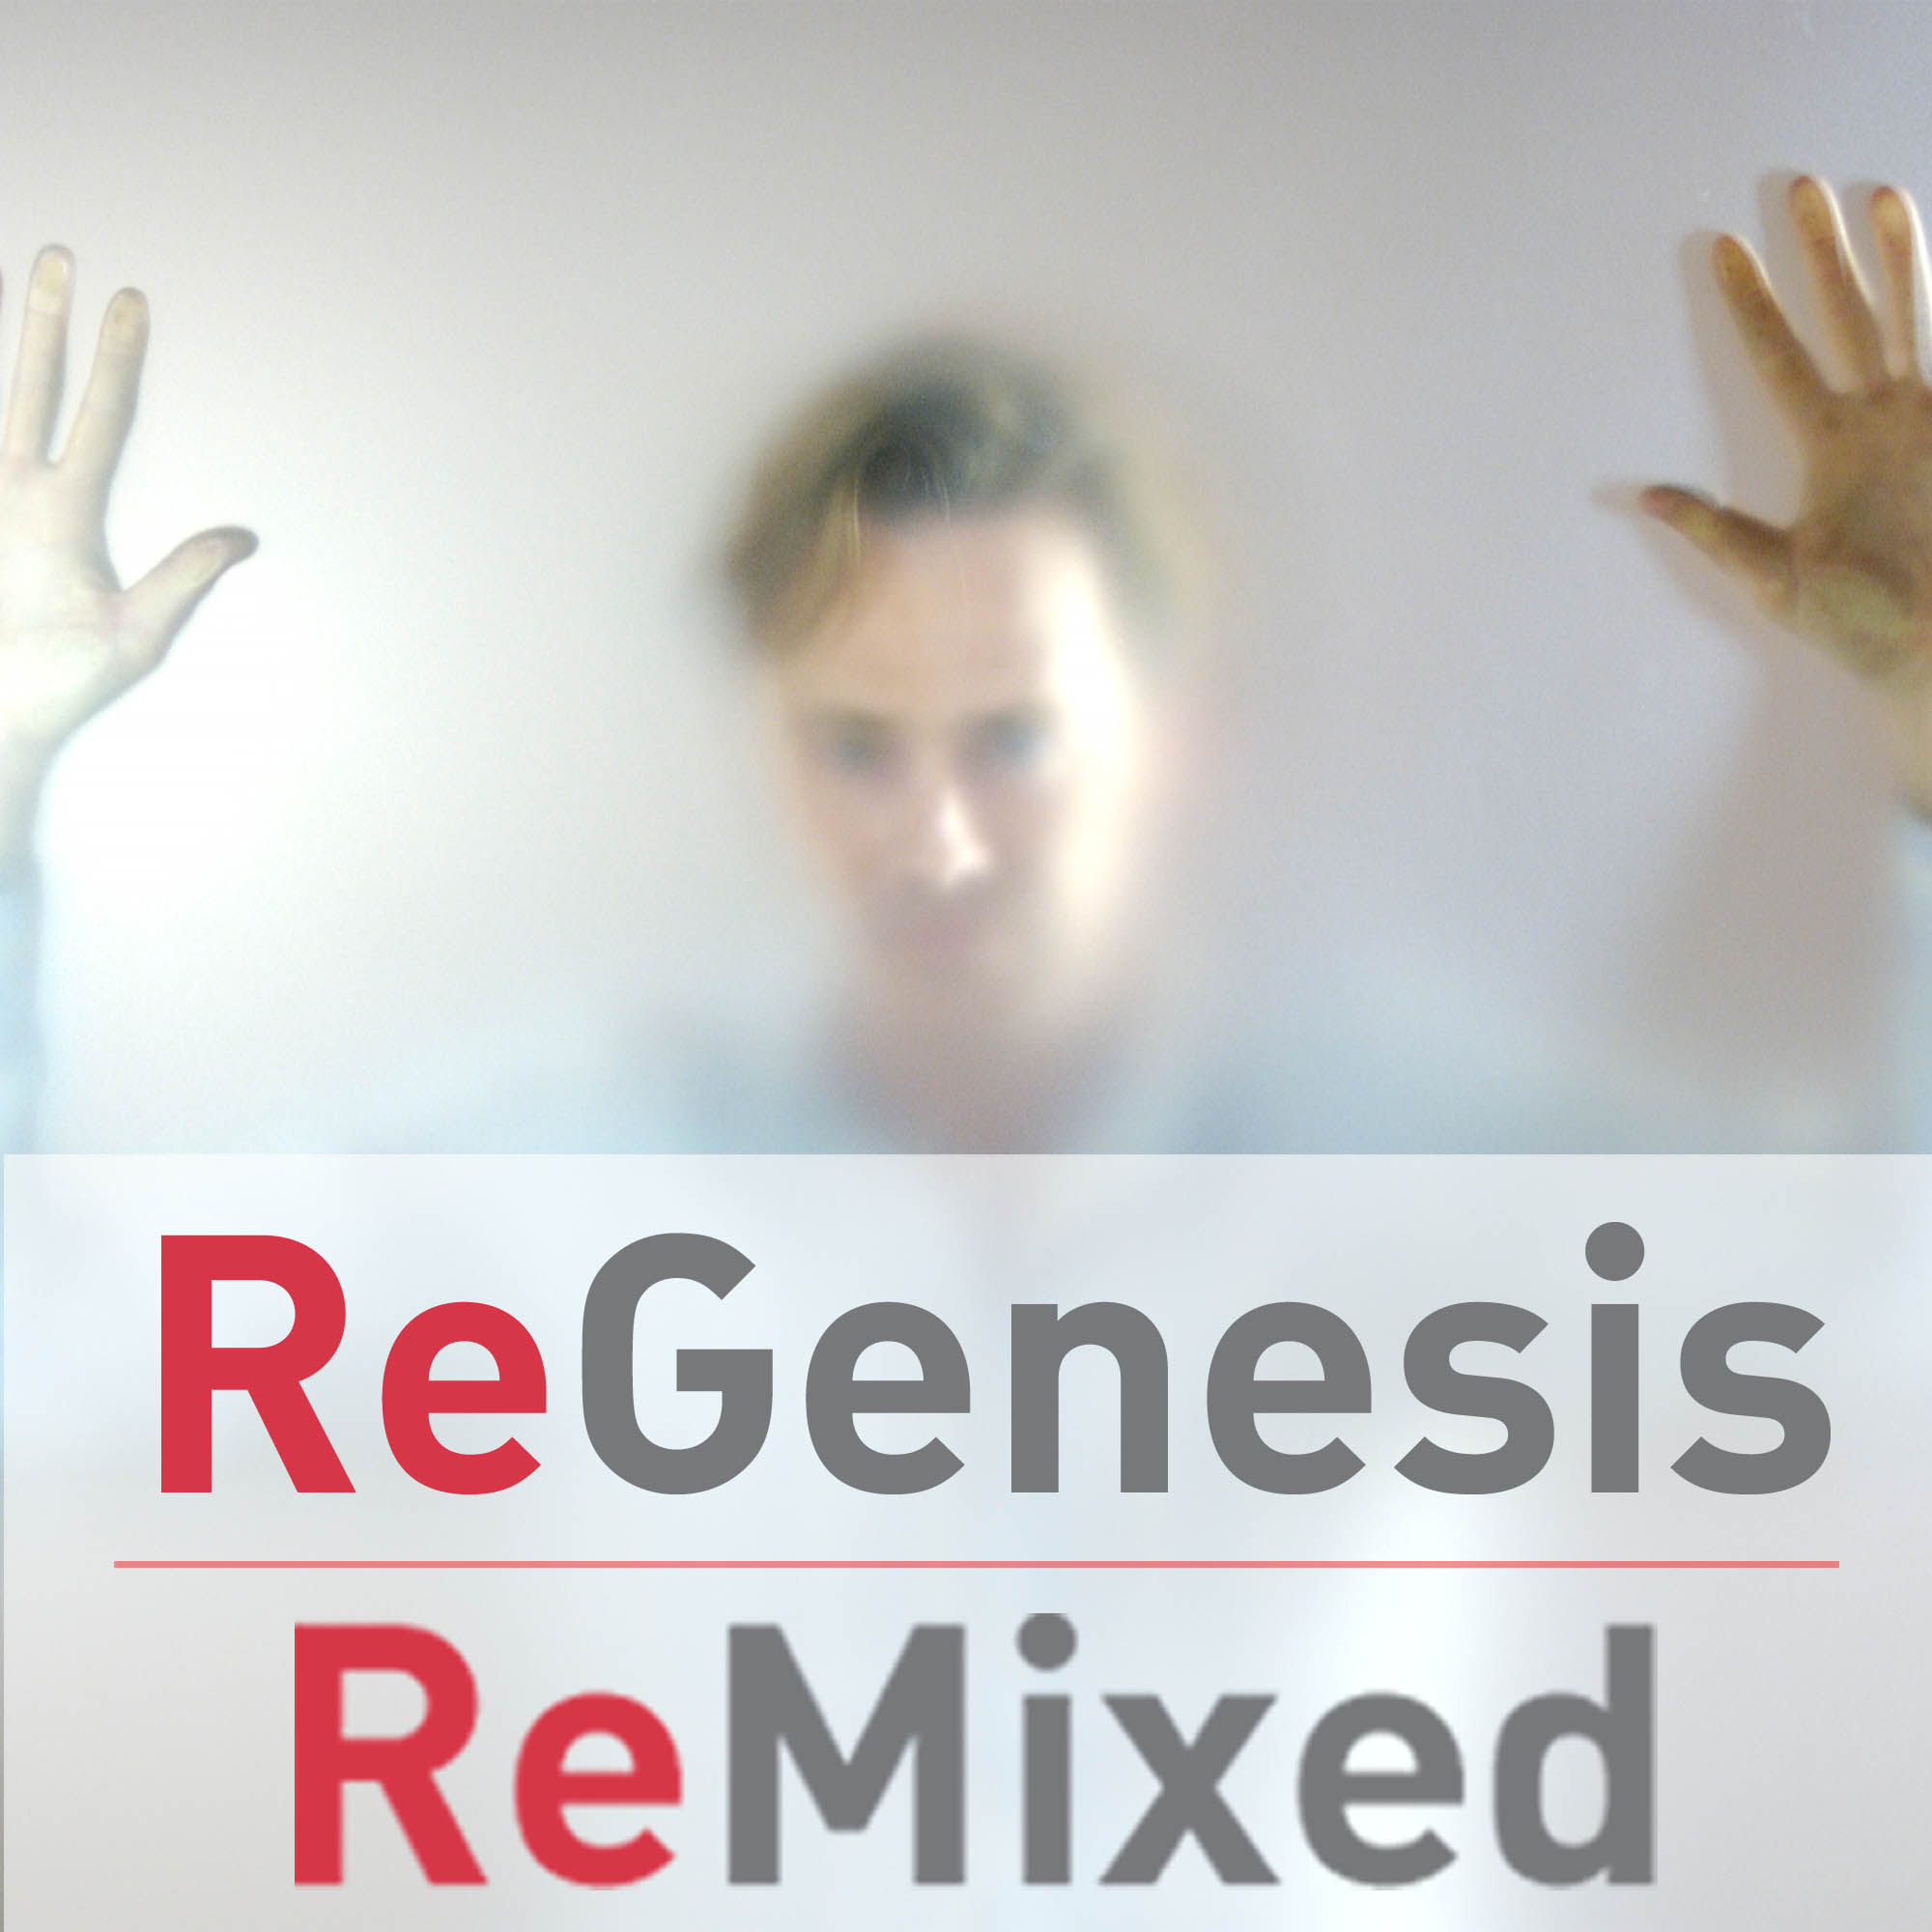 ReGenesis: Remixed - Podcast Cover Art - Podcasts